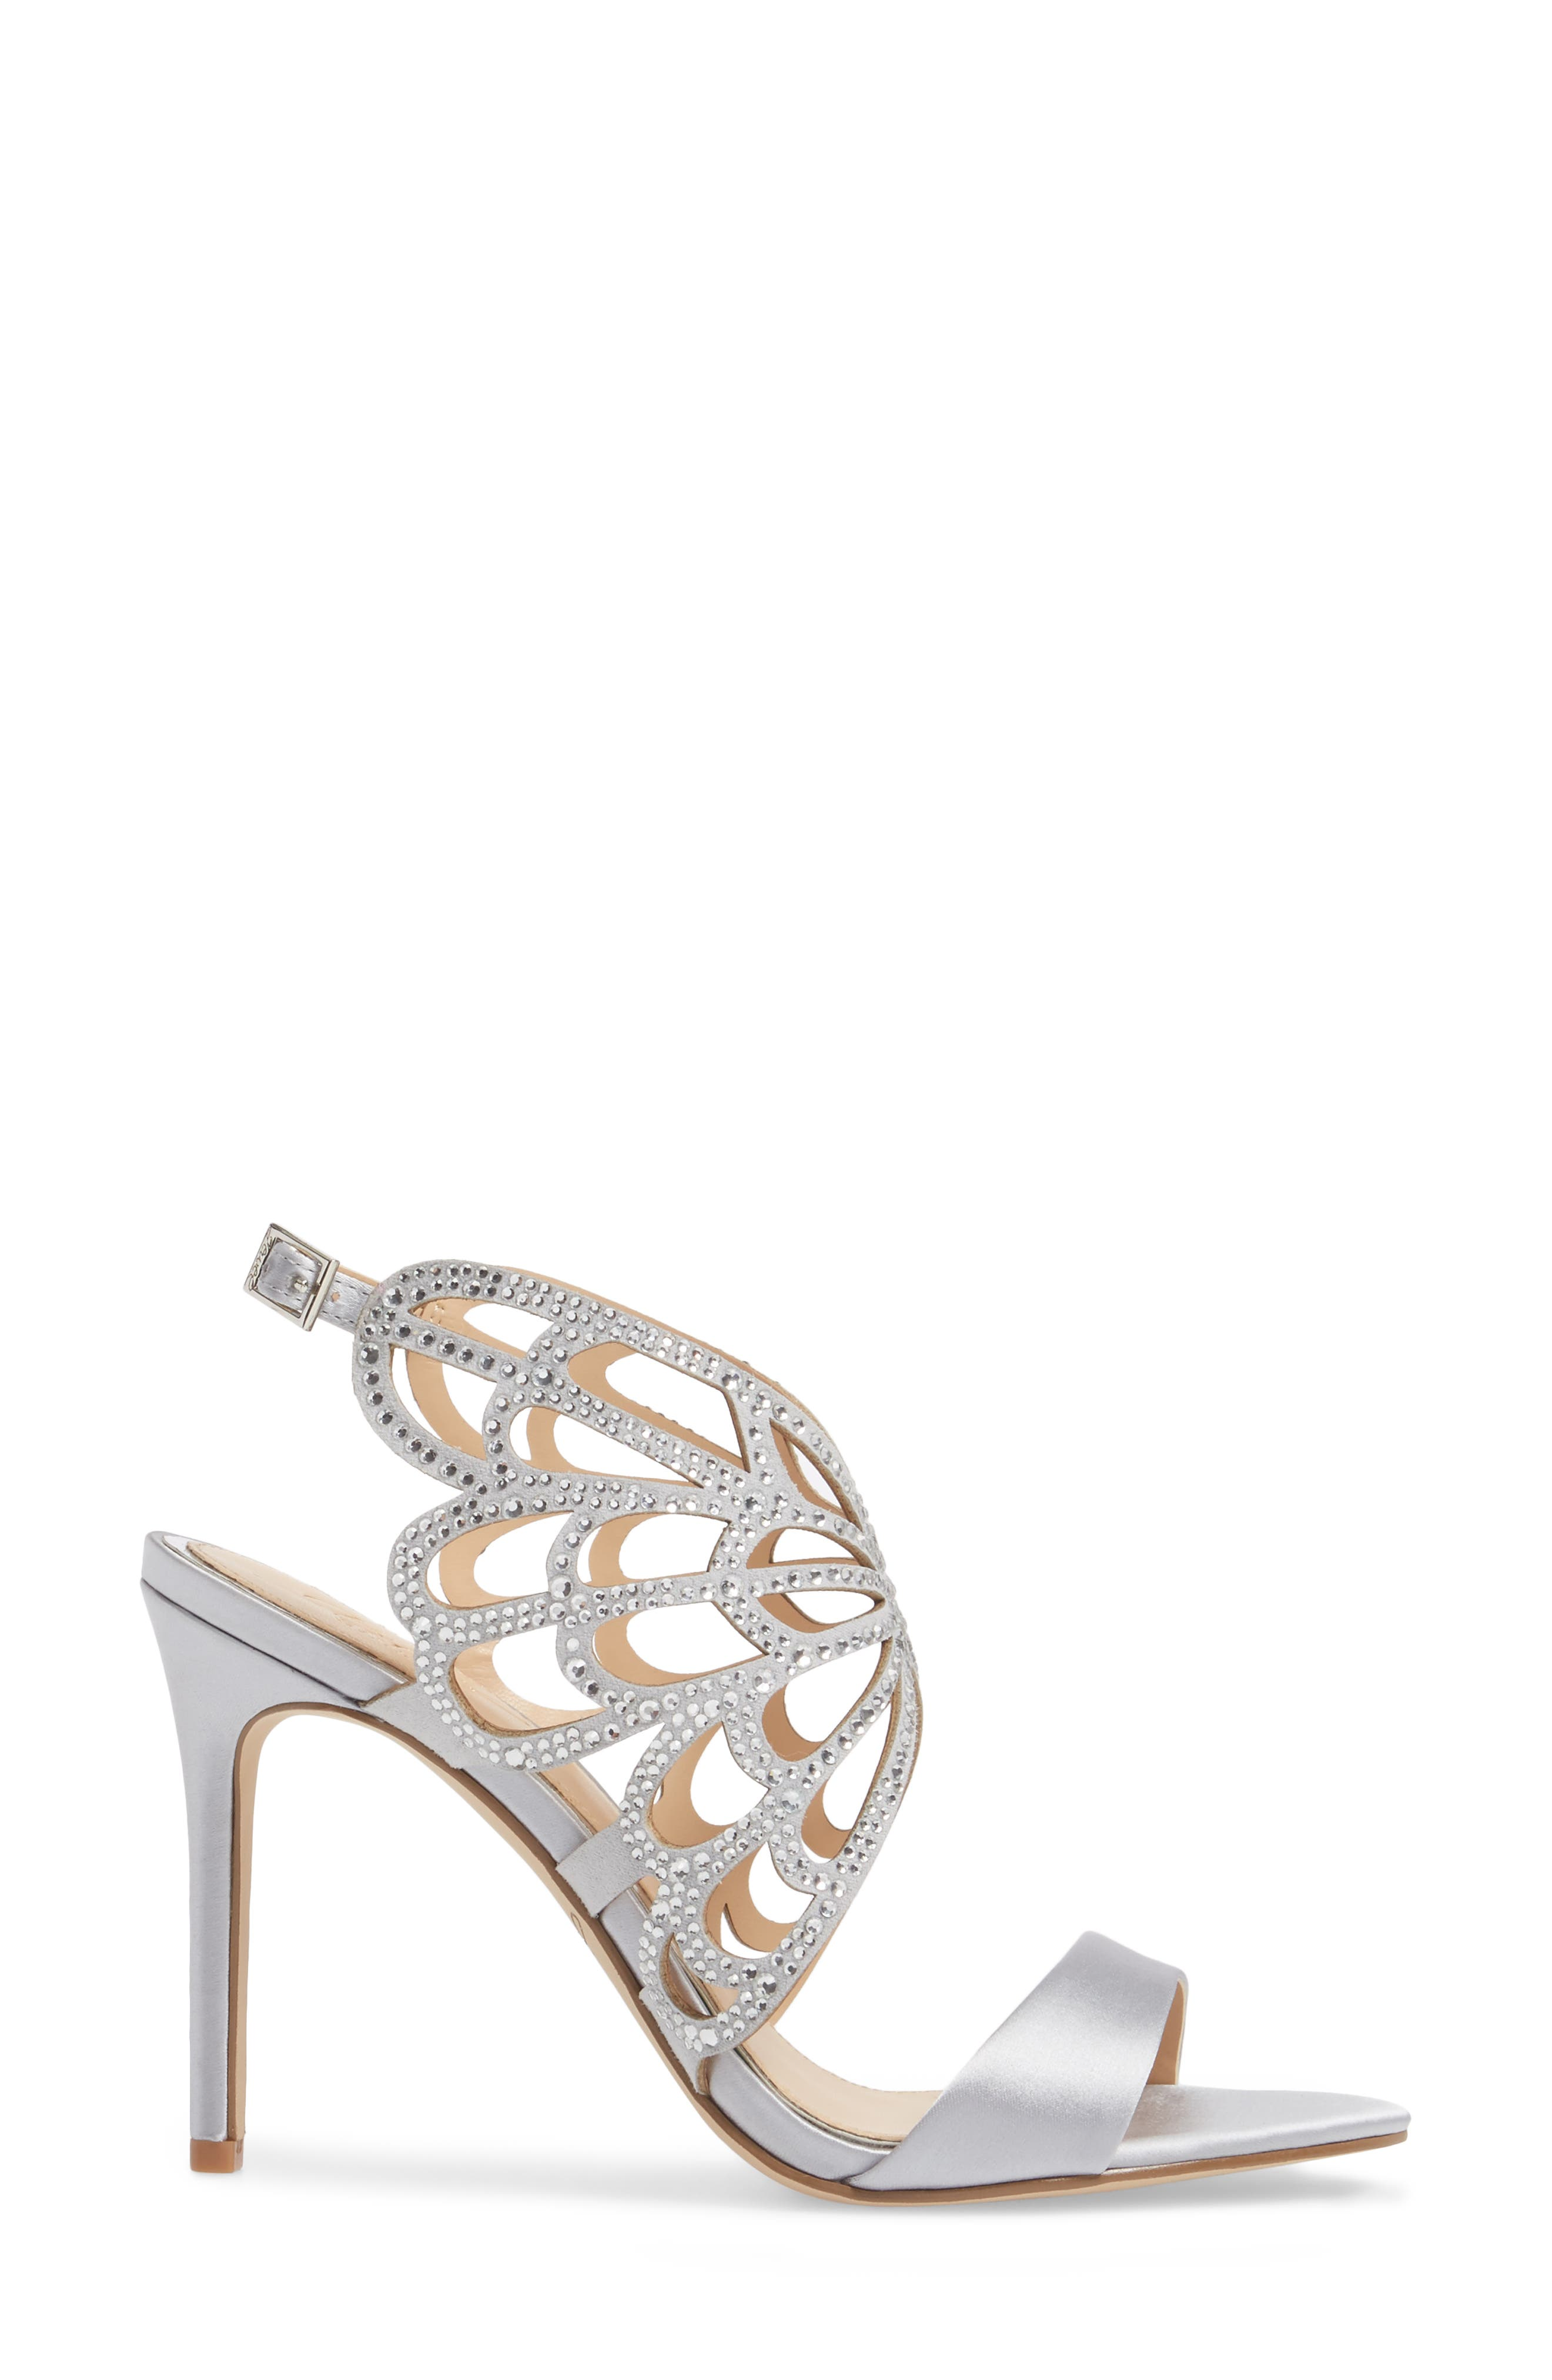 Taresa Crystal Embellished Butterfly Sandal,                             Alternate thumbnail 3, color,                             Silver Satin